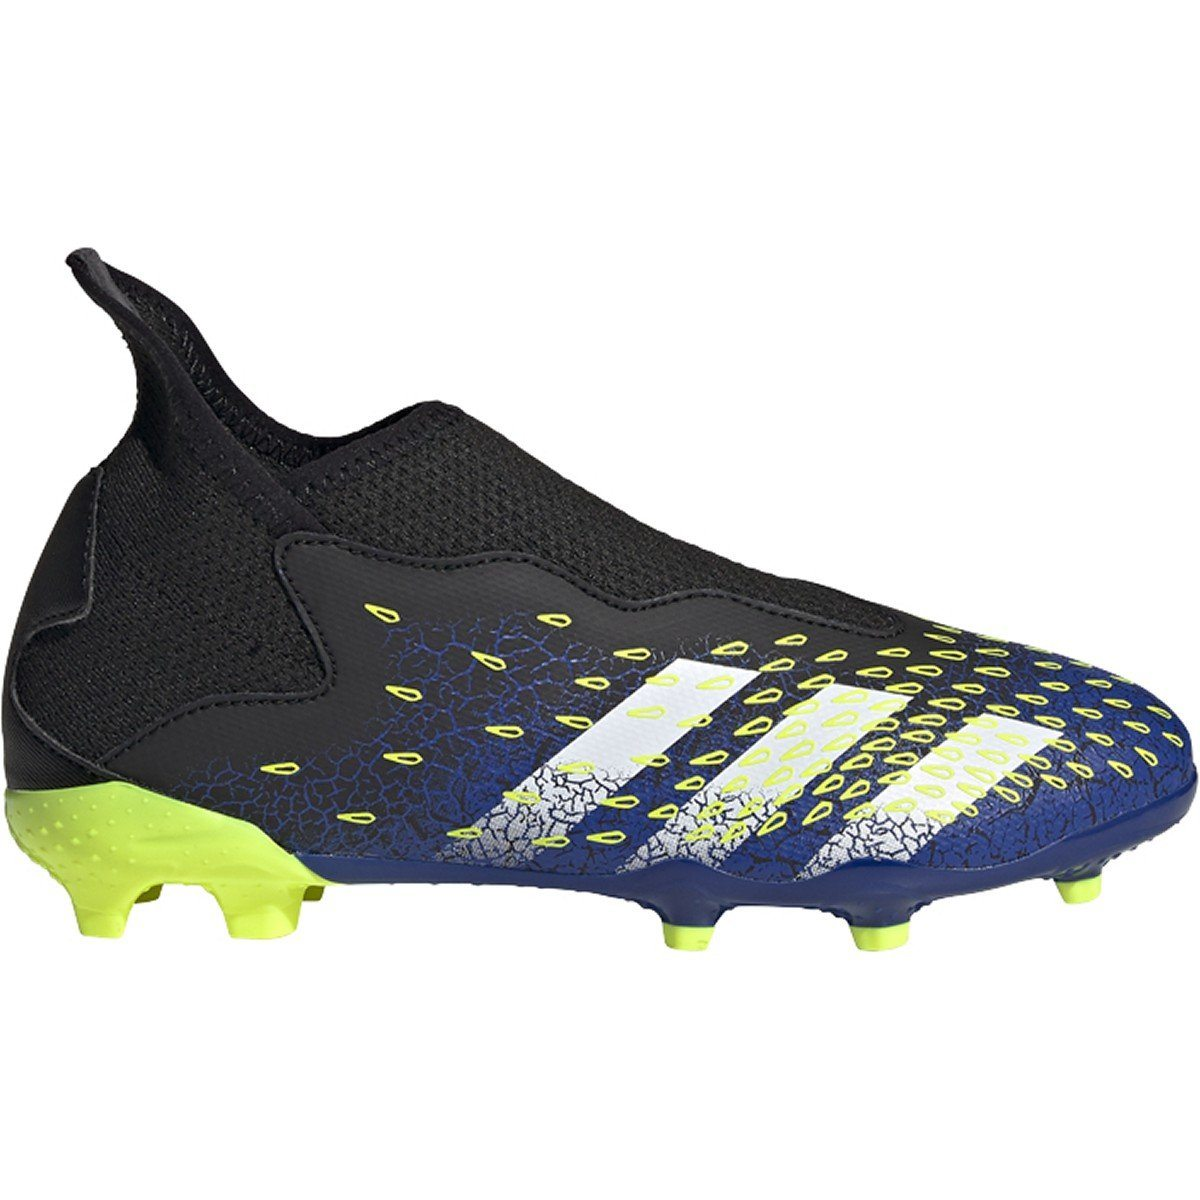 adidas Boys Firm Ground Predator Freak .3 Laceless | FY0618 Goal Kick Soccer 1.0 Black/White/Solar Yellow